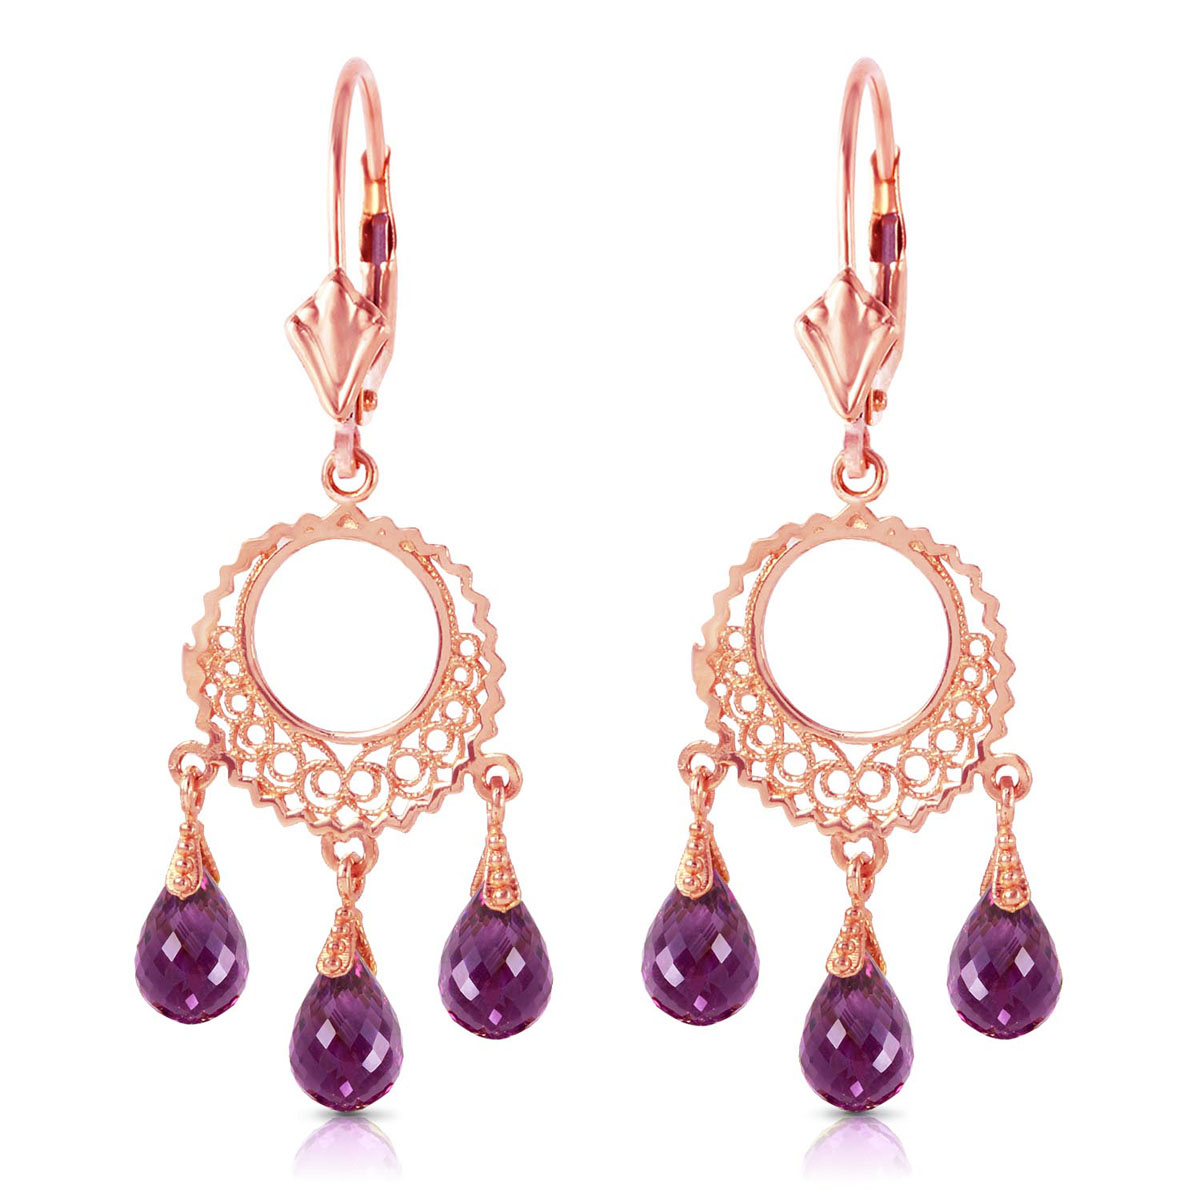 Amethyst Trilogy Drop Earrings 3.75 ctw in 9ct Rose Gold